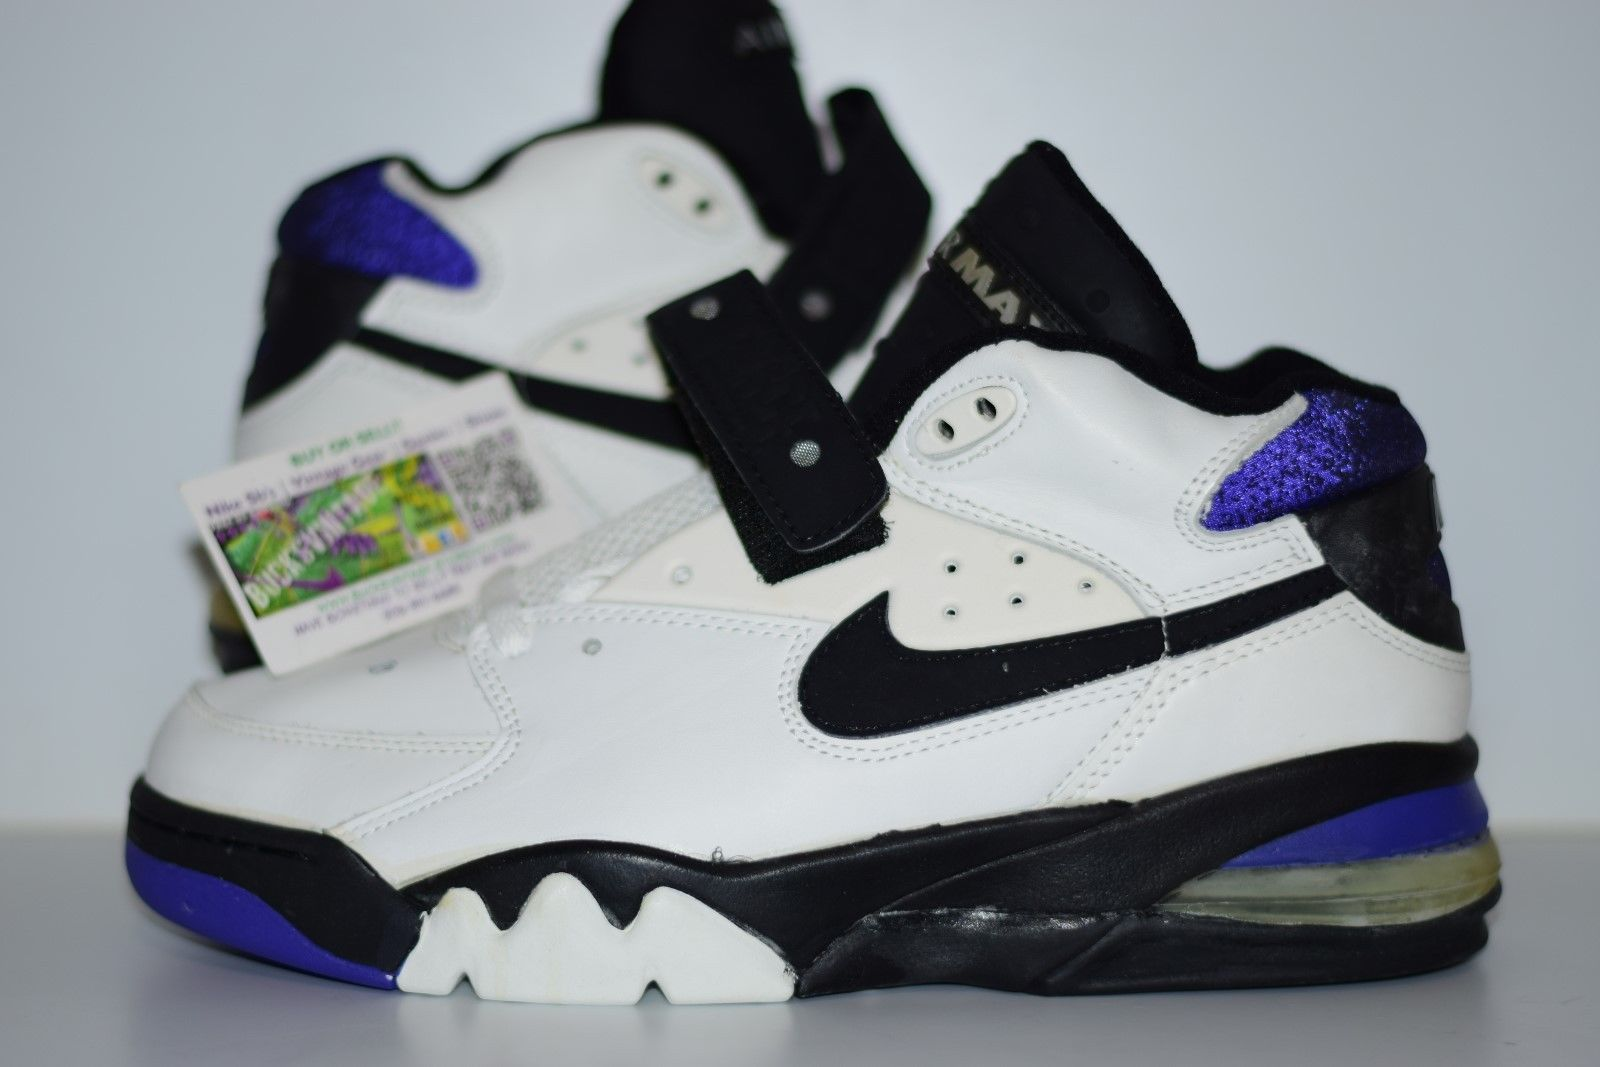 Size 10 | OG 1993 Nike Air Force Max CB Cobalt Suns Charles Barkley